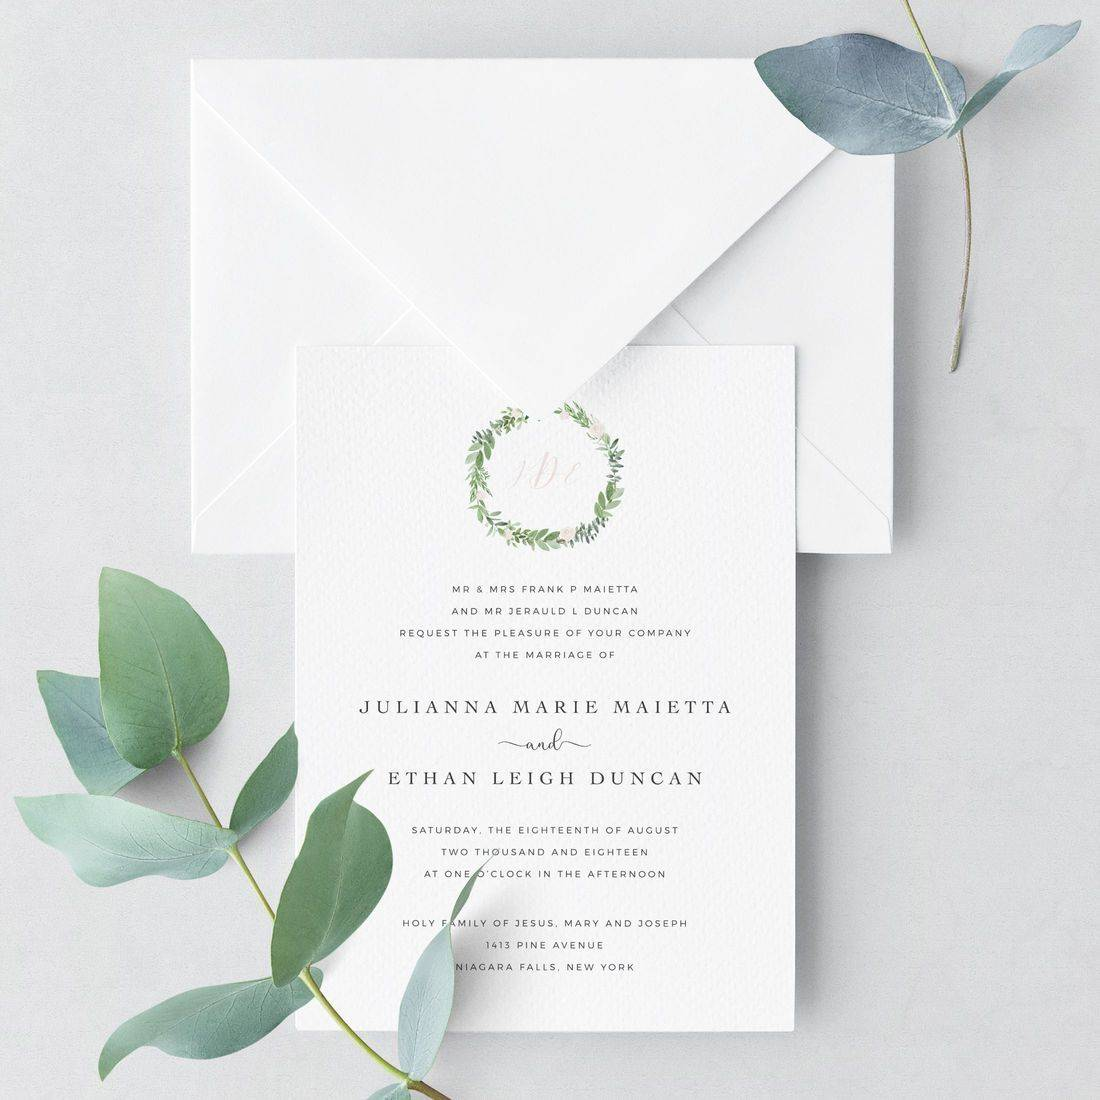 Simple modern invitation flat lay with eucalyptus, laurel wreath and monogram